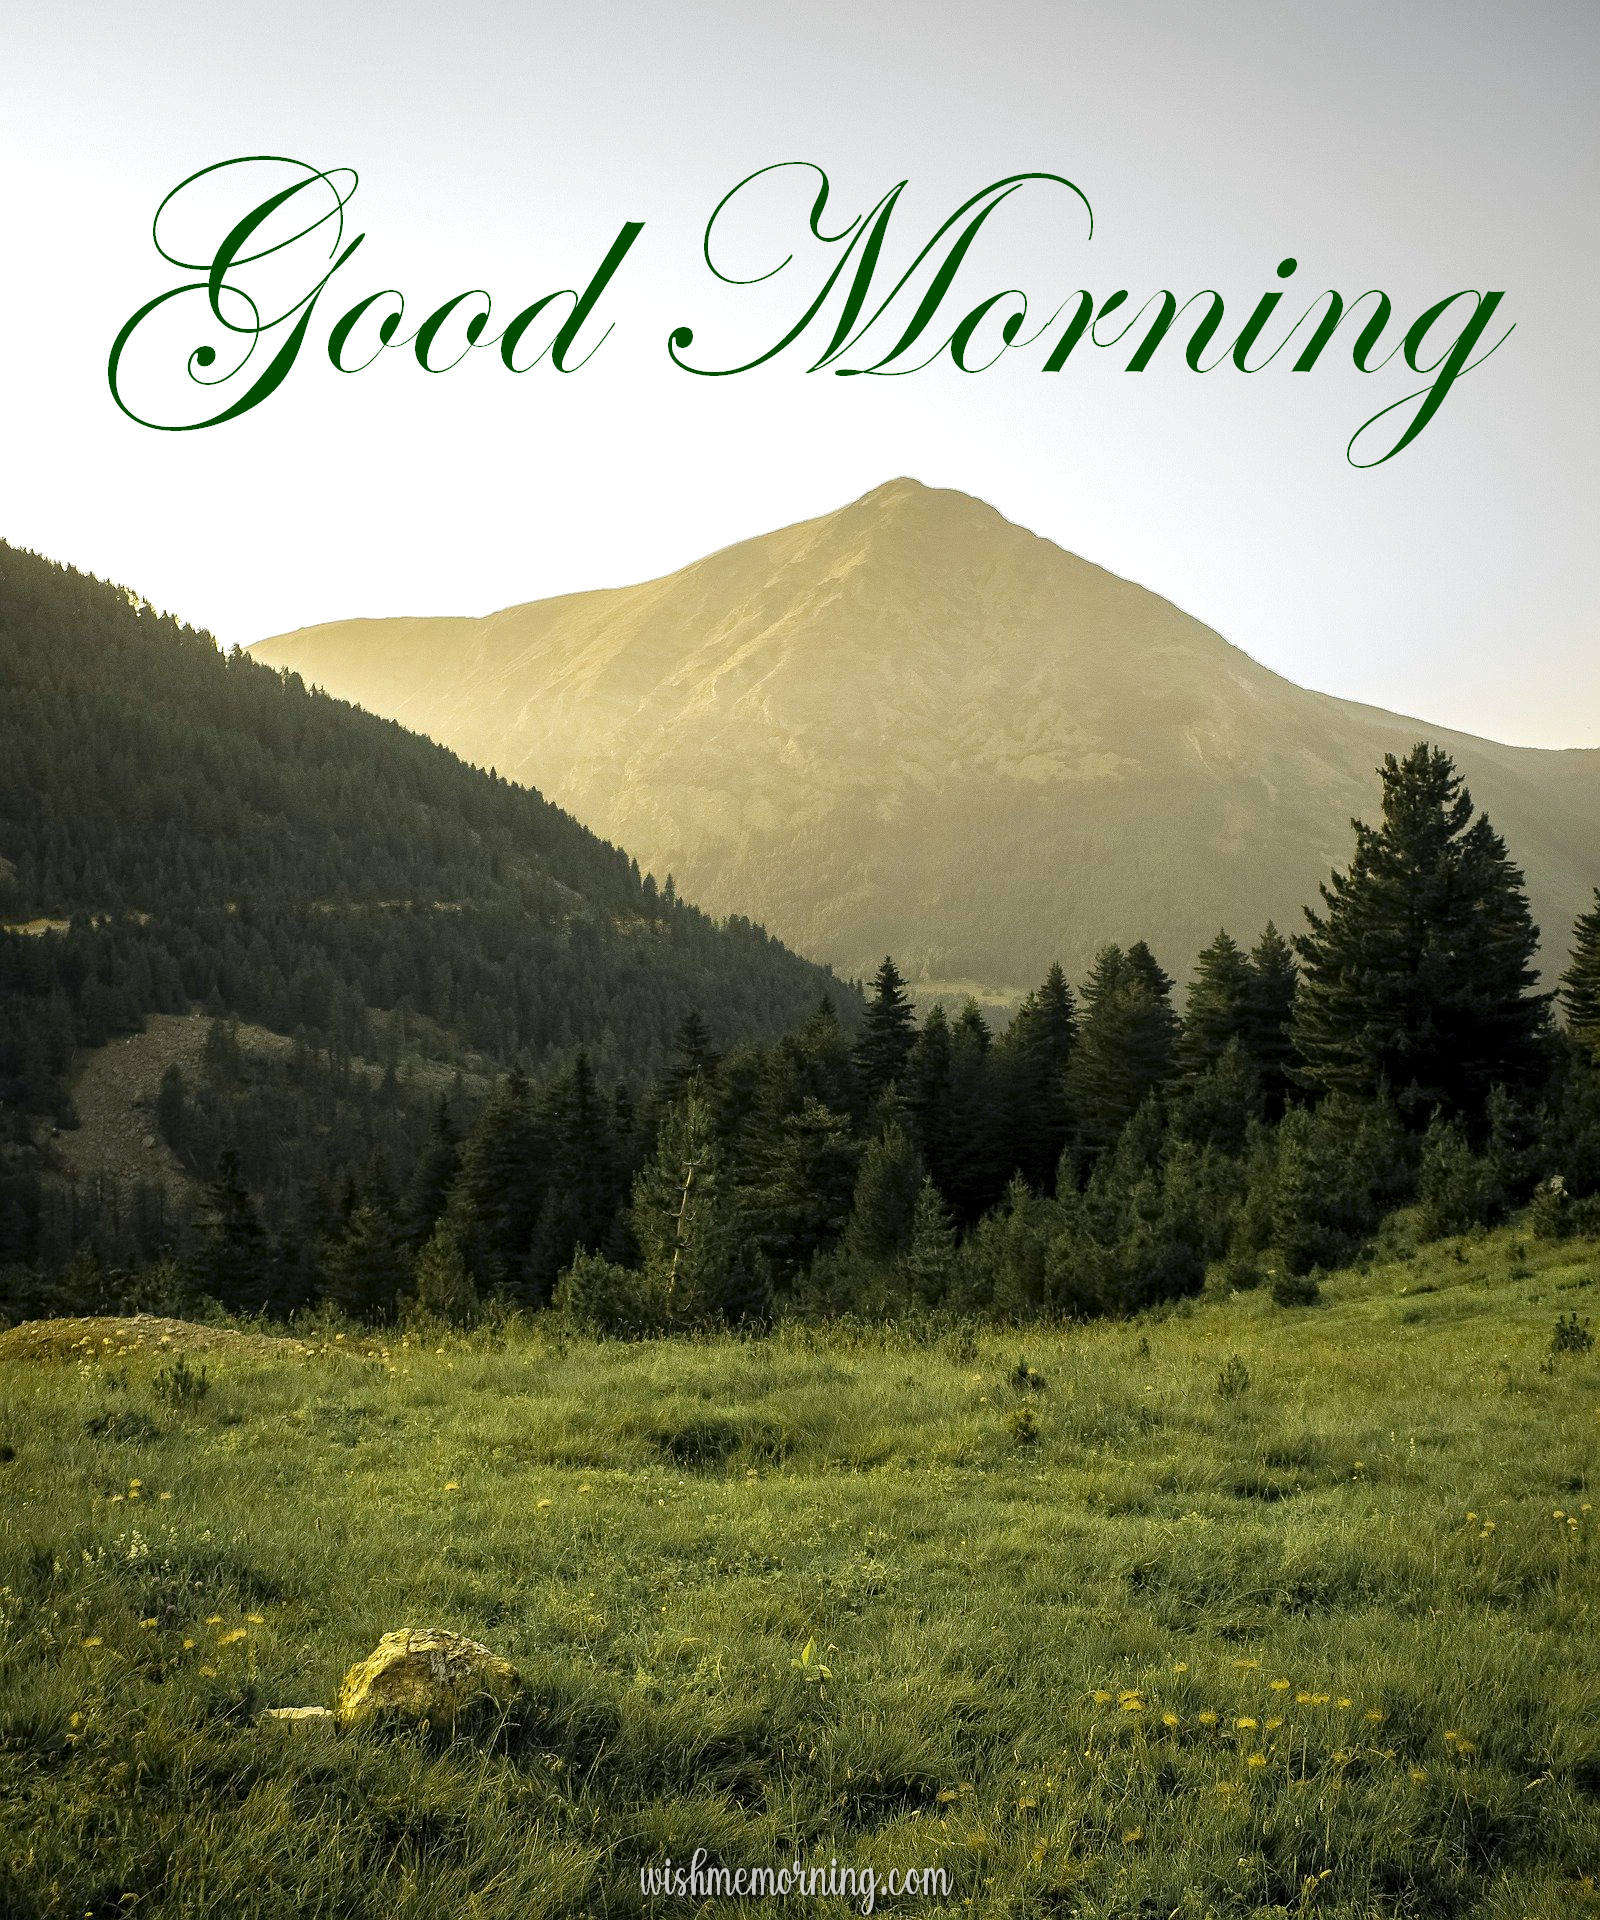 Beautiful Trees Woods Nature Images Wishes wishmemorning.com 17